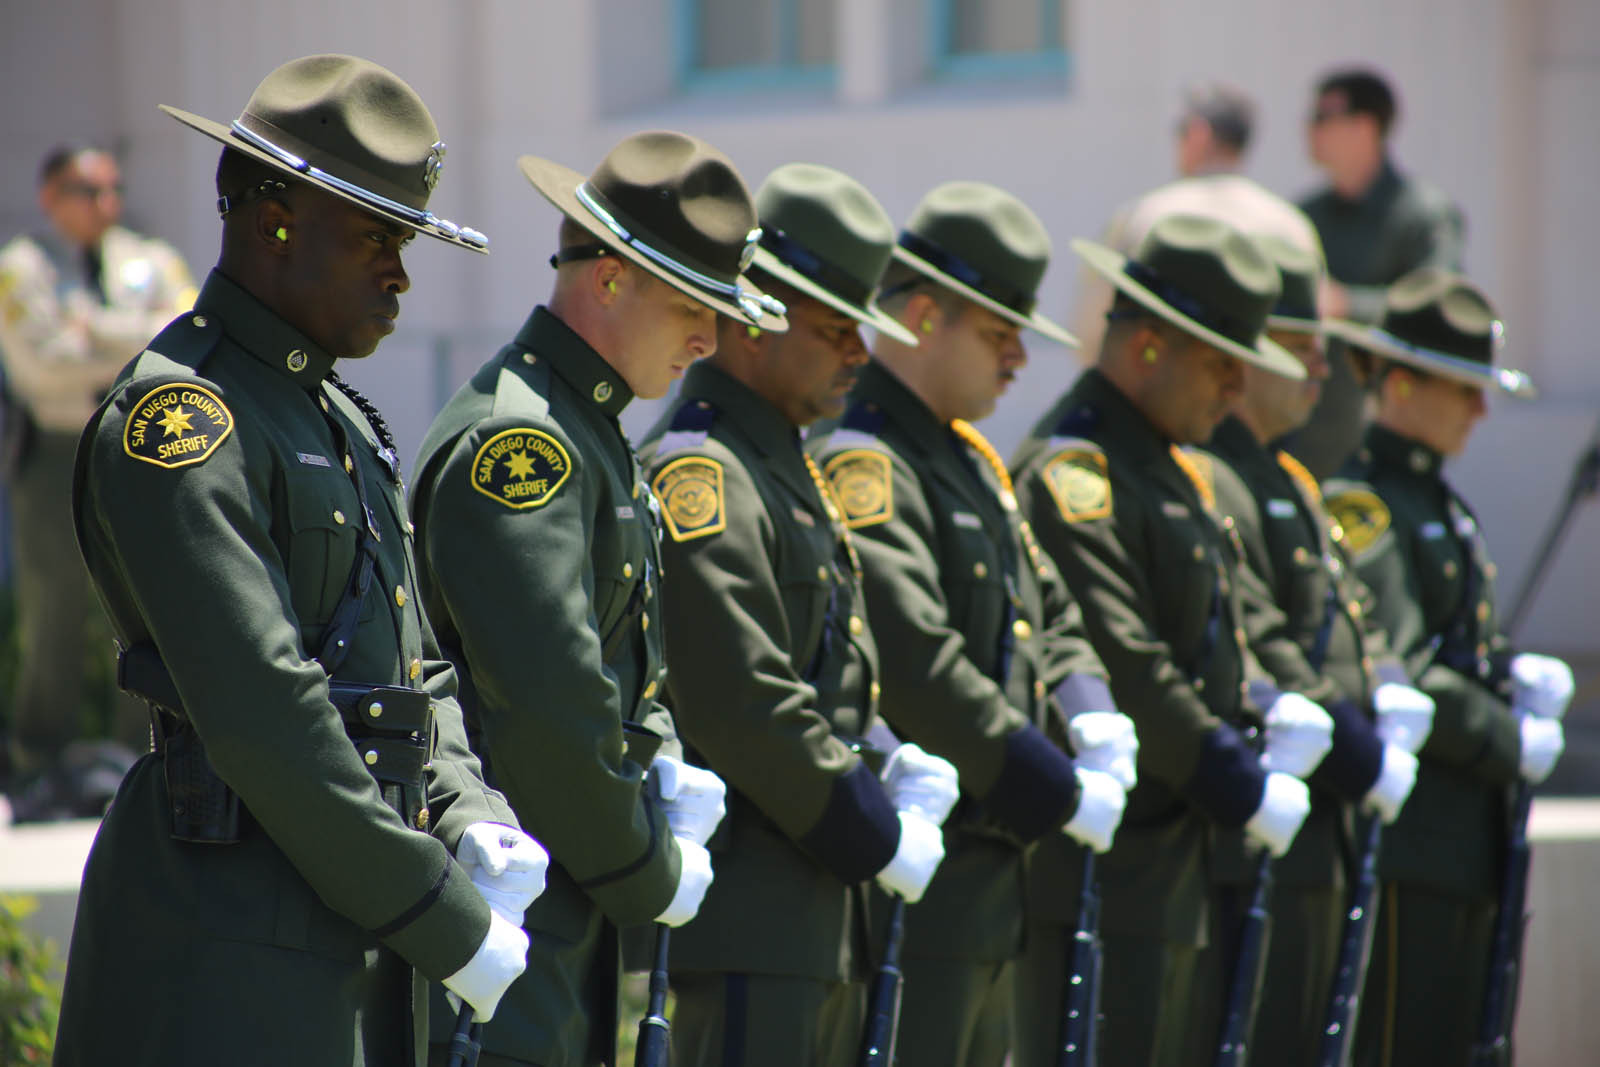 33rd Annual Law Enforcement Officers Memorial Ceremony